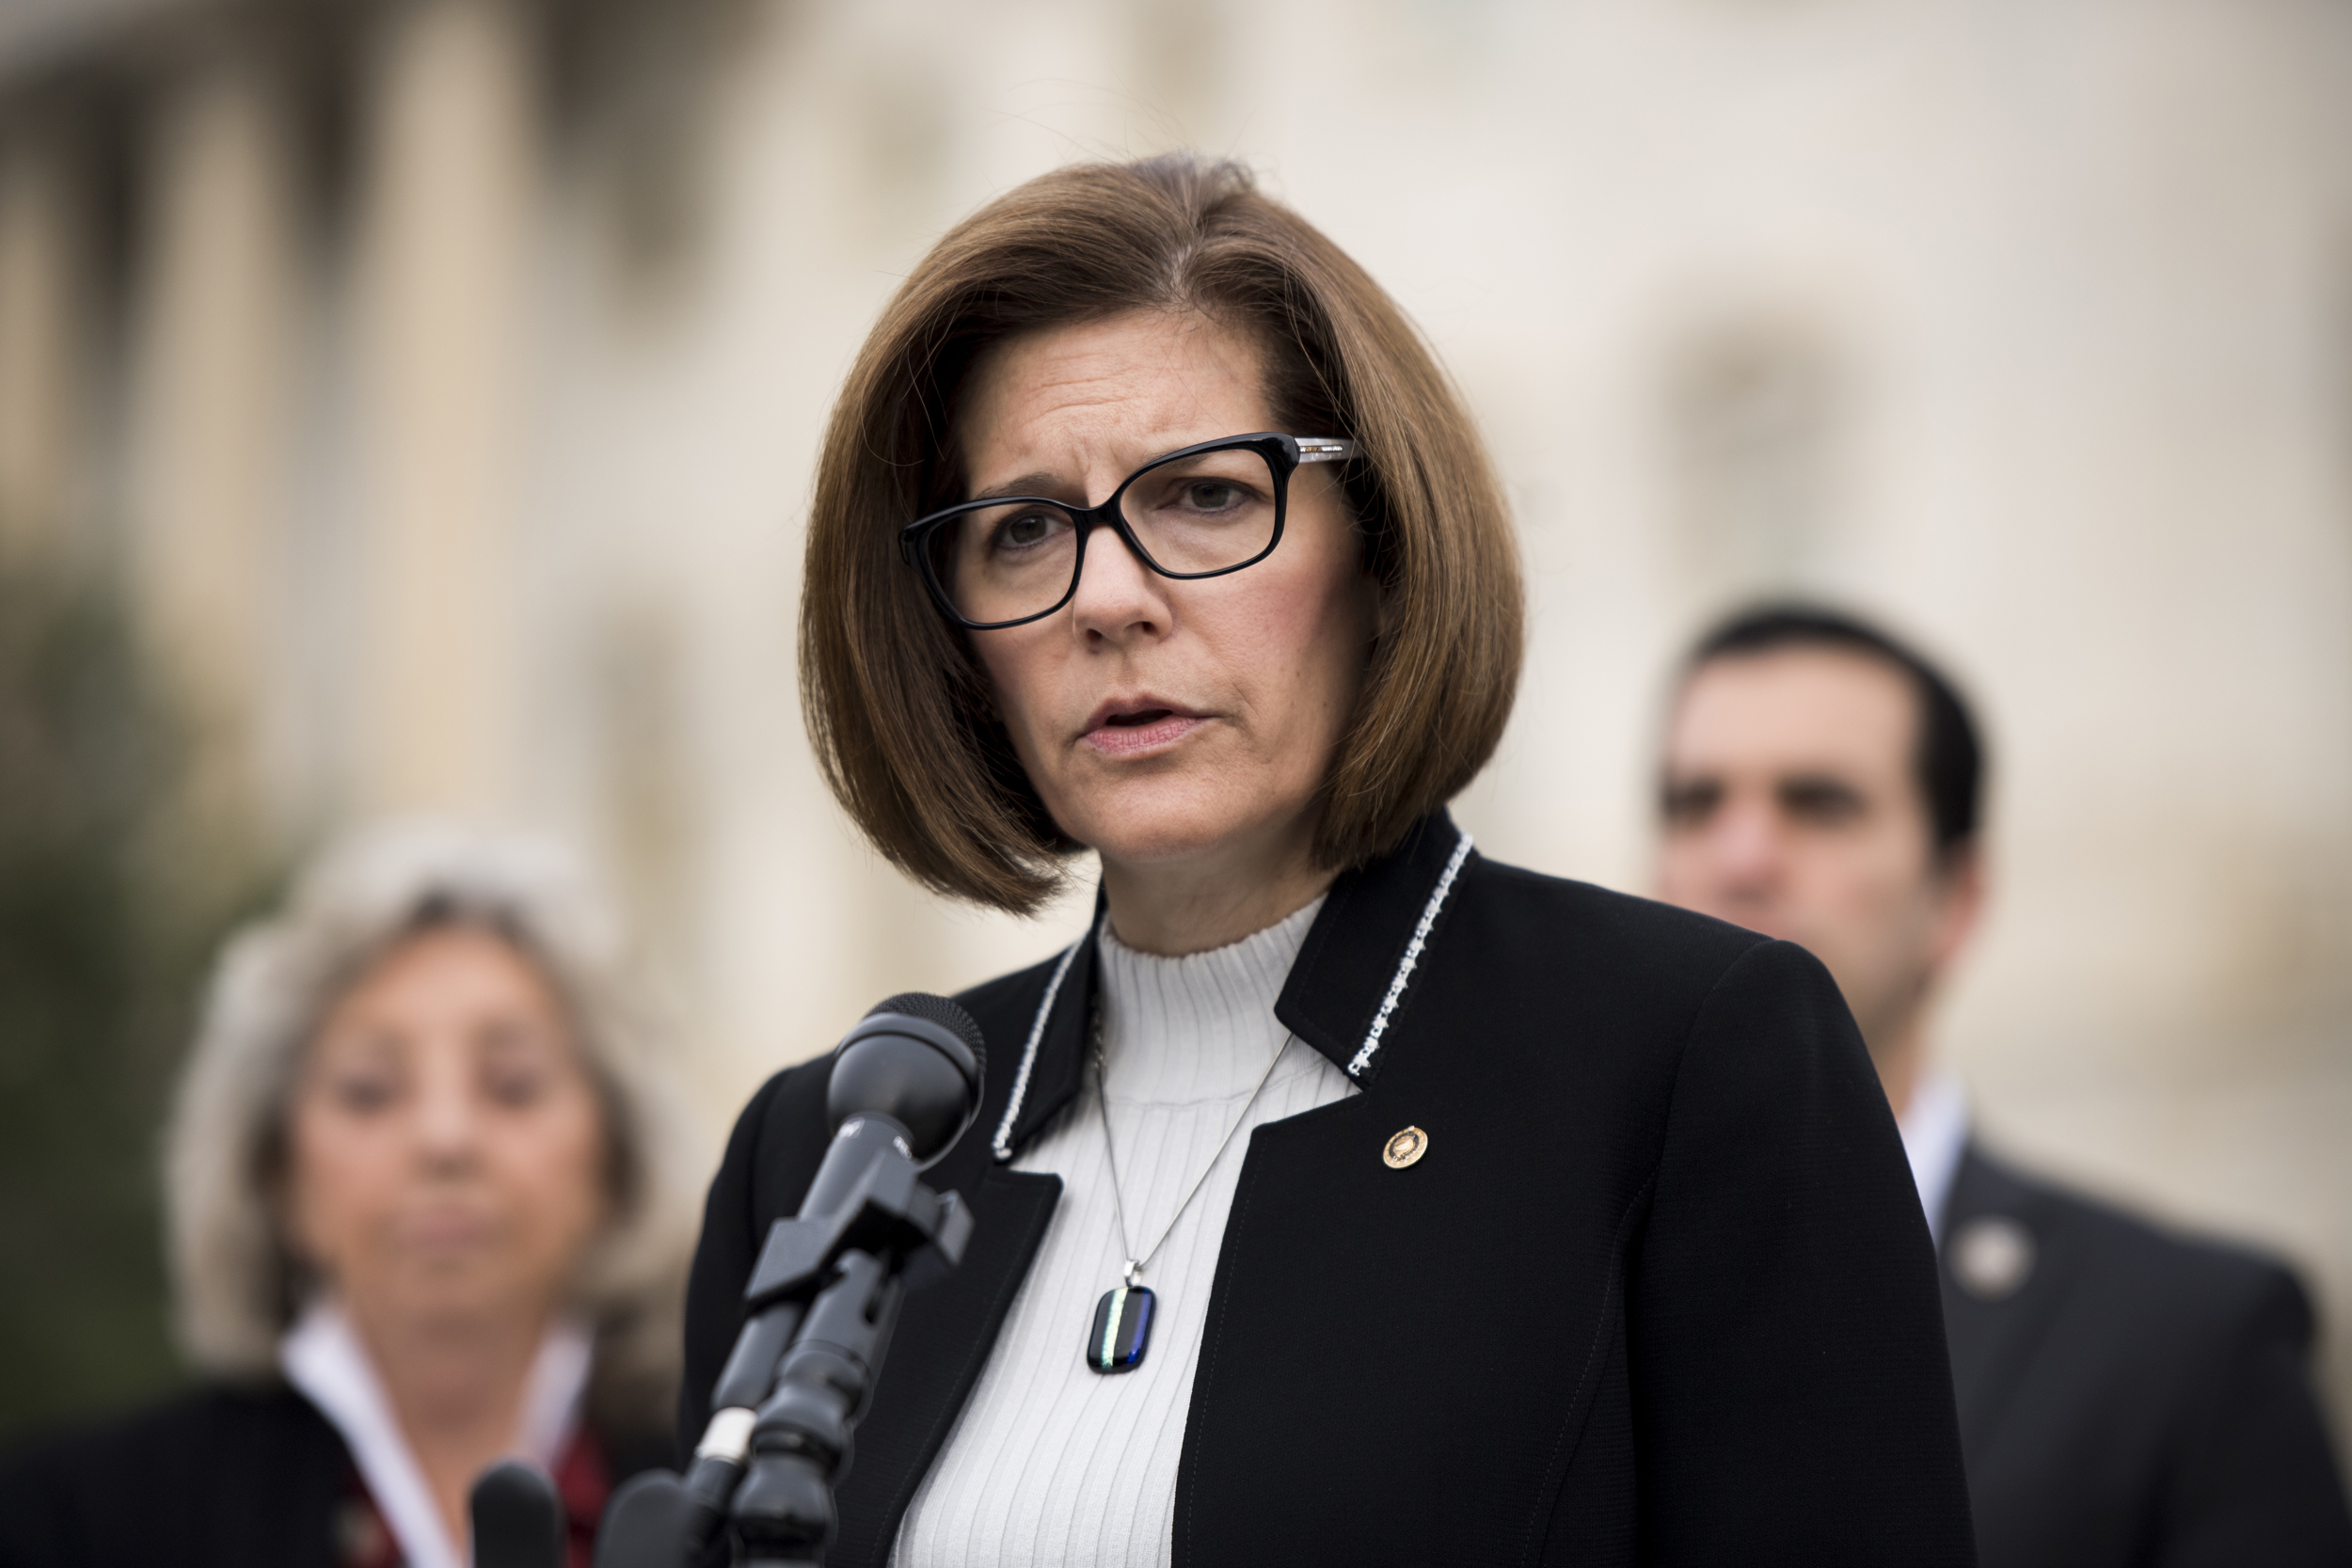 Image: Sen. Catherine Cortez Masto, D-Nev., speaks during a news conference at the Capitol